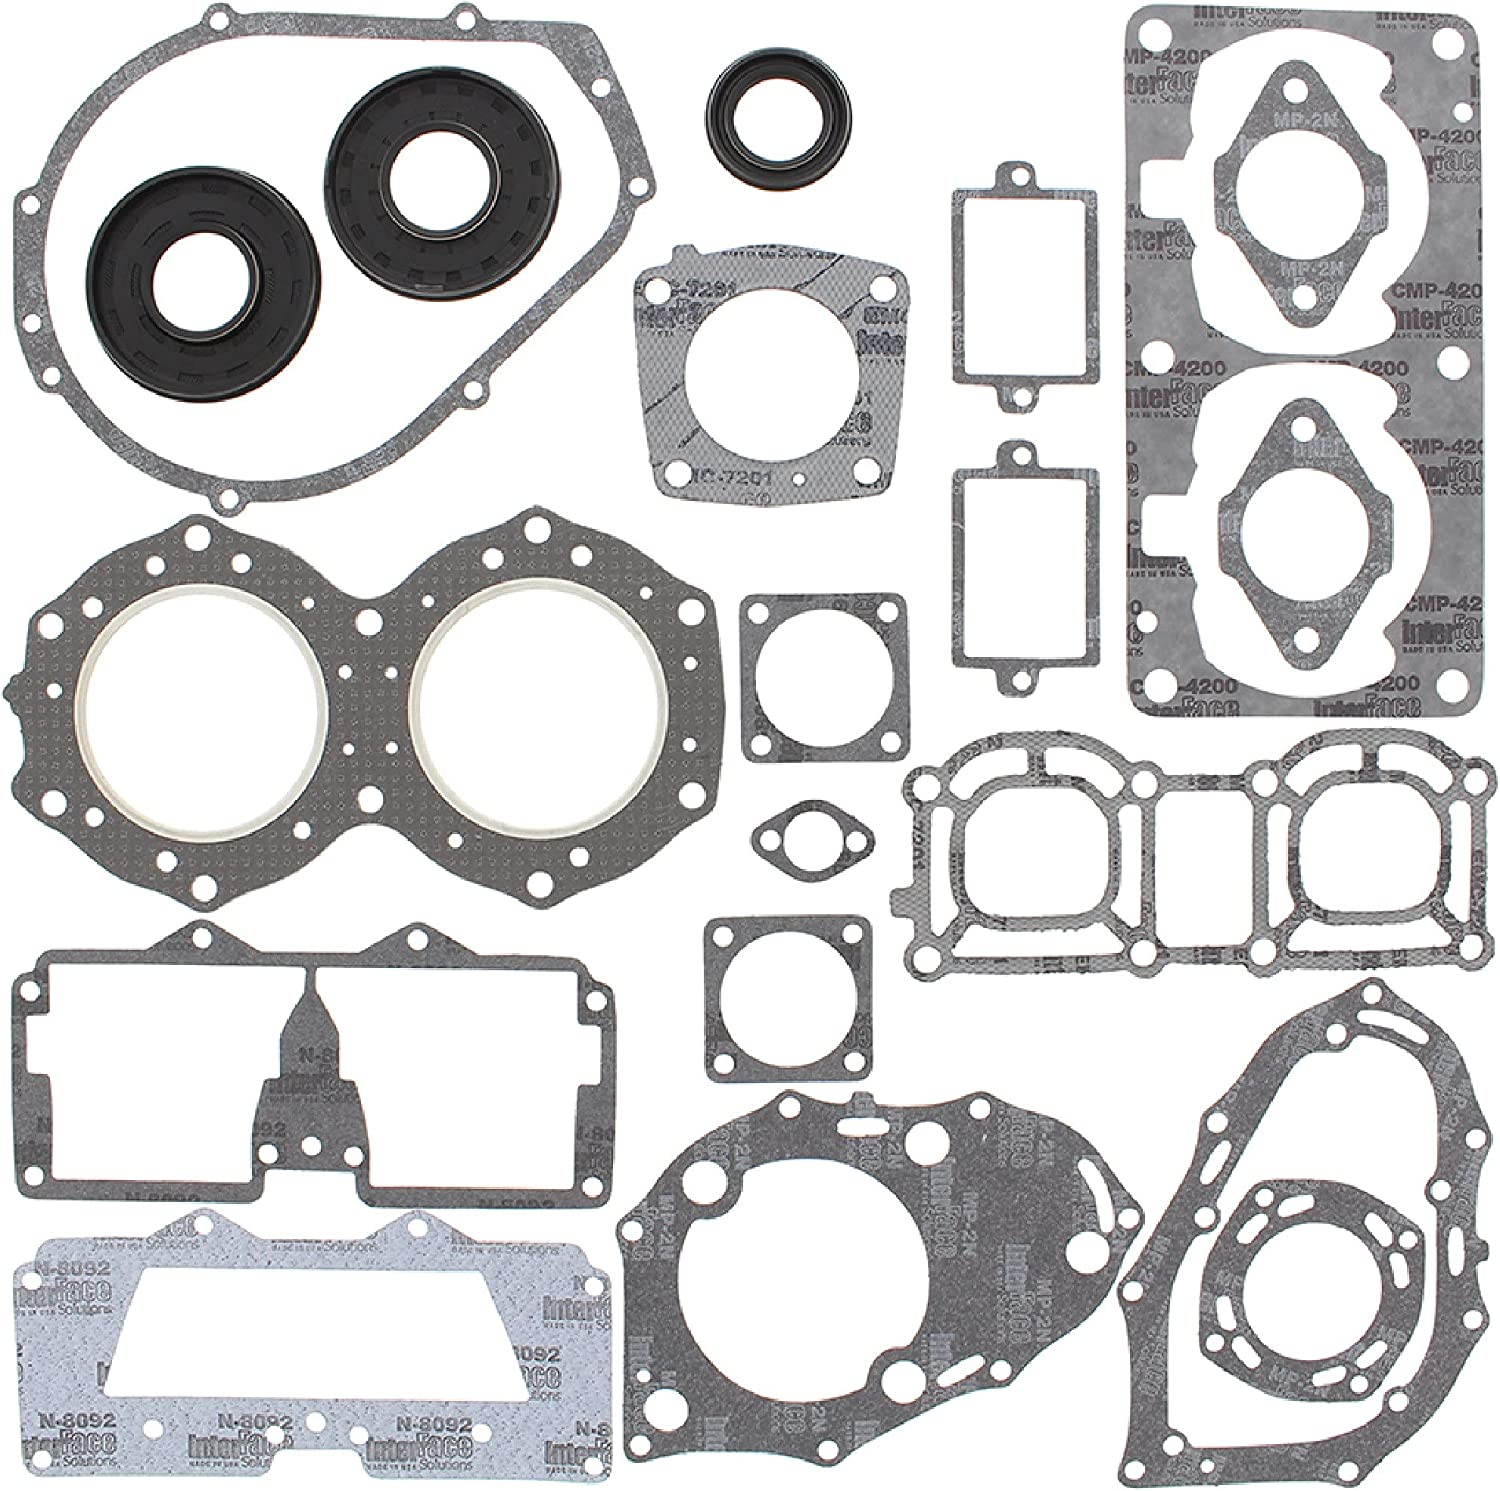 New Winderosa Gasket Kit With Large-scale sale Oil Yamaha 700 Wave for Seals Runn 55% OFF